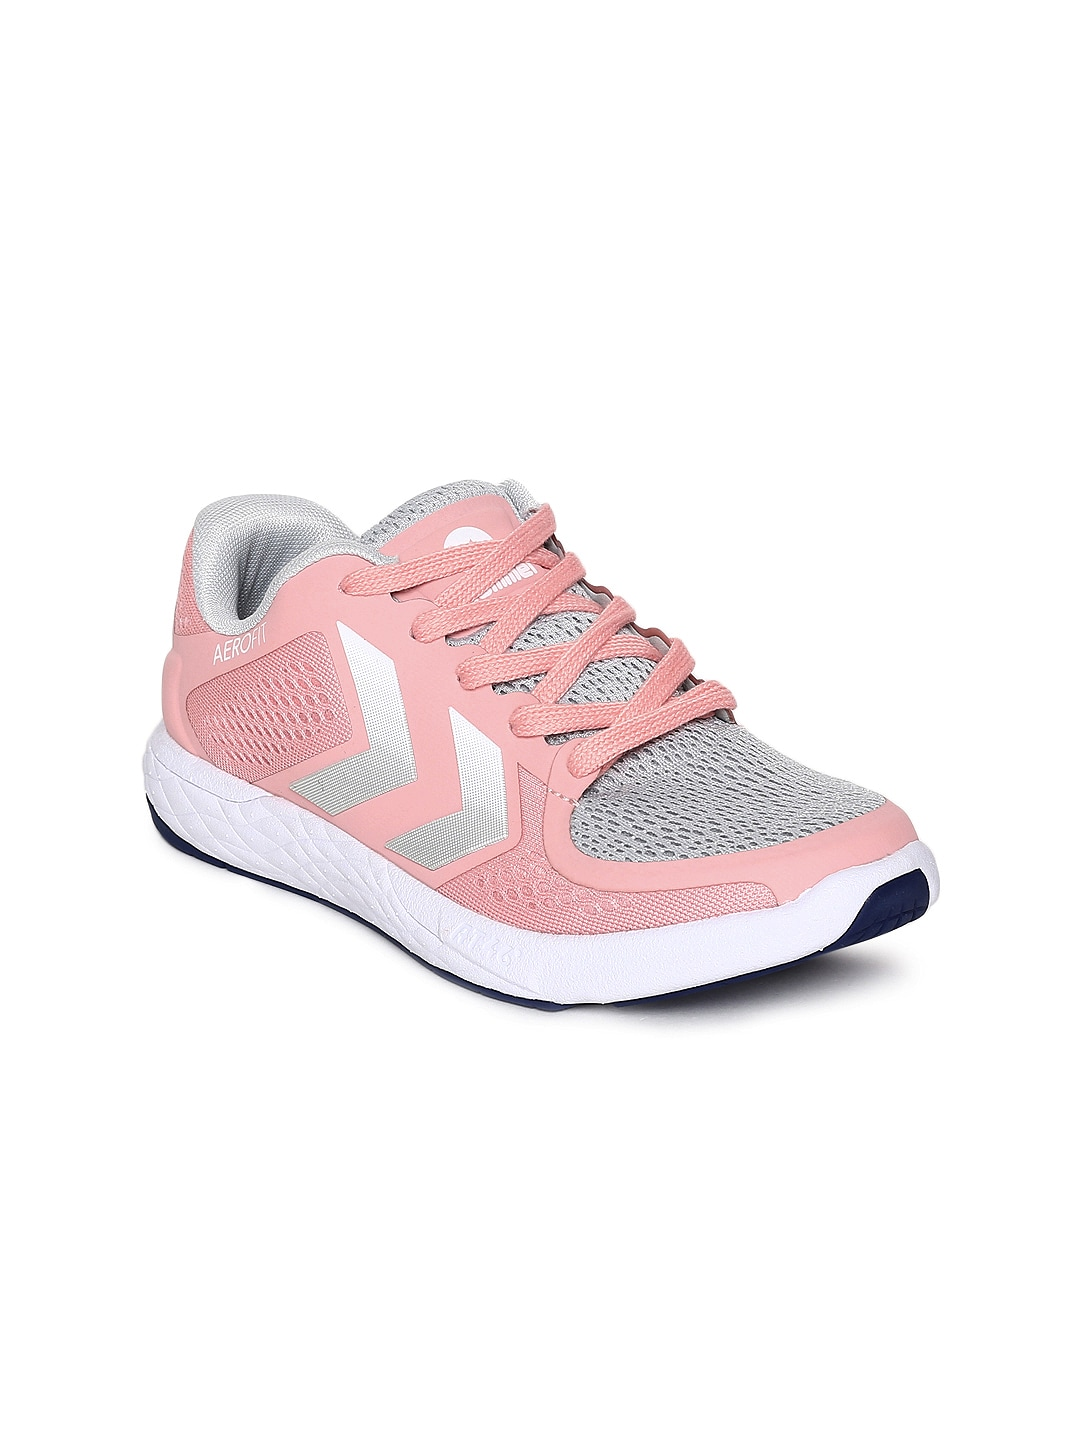 a8f62184643 Pink Sports Shoes - Buy Pink Sports Shoes online in India